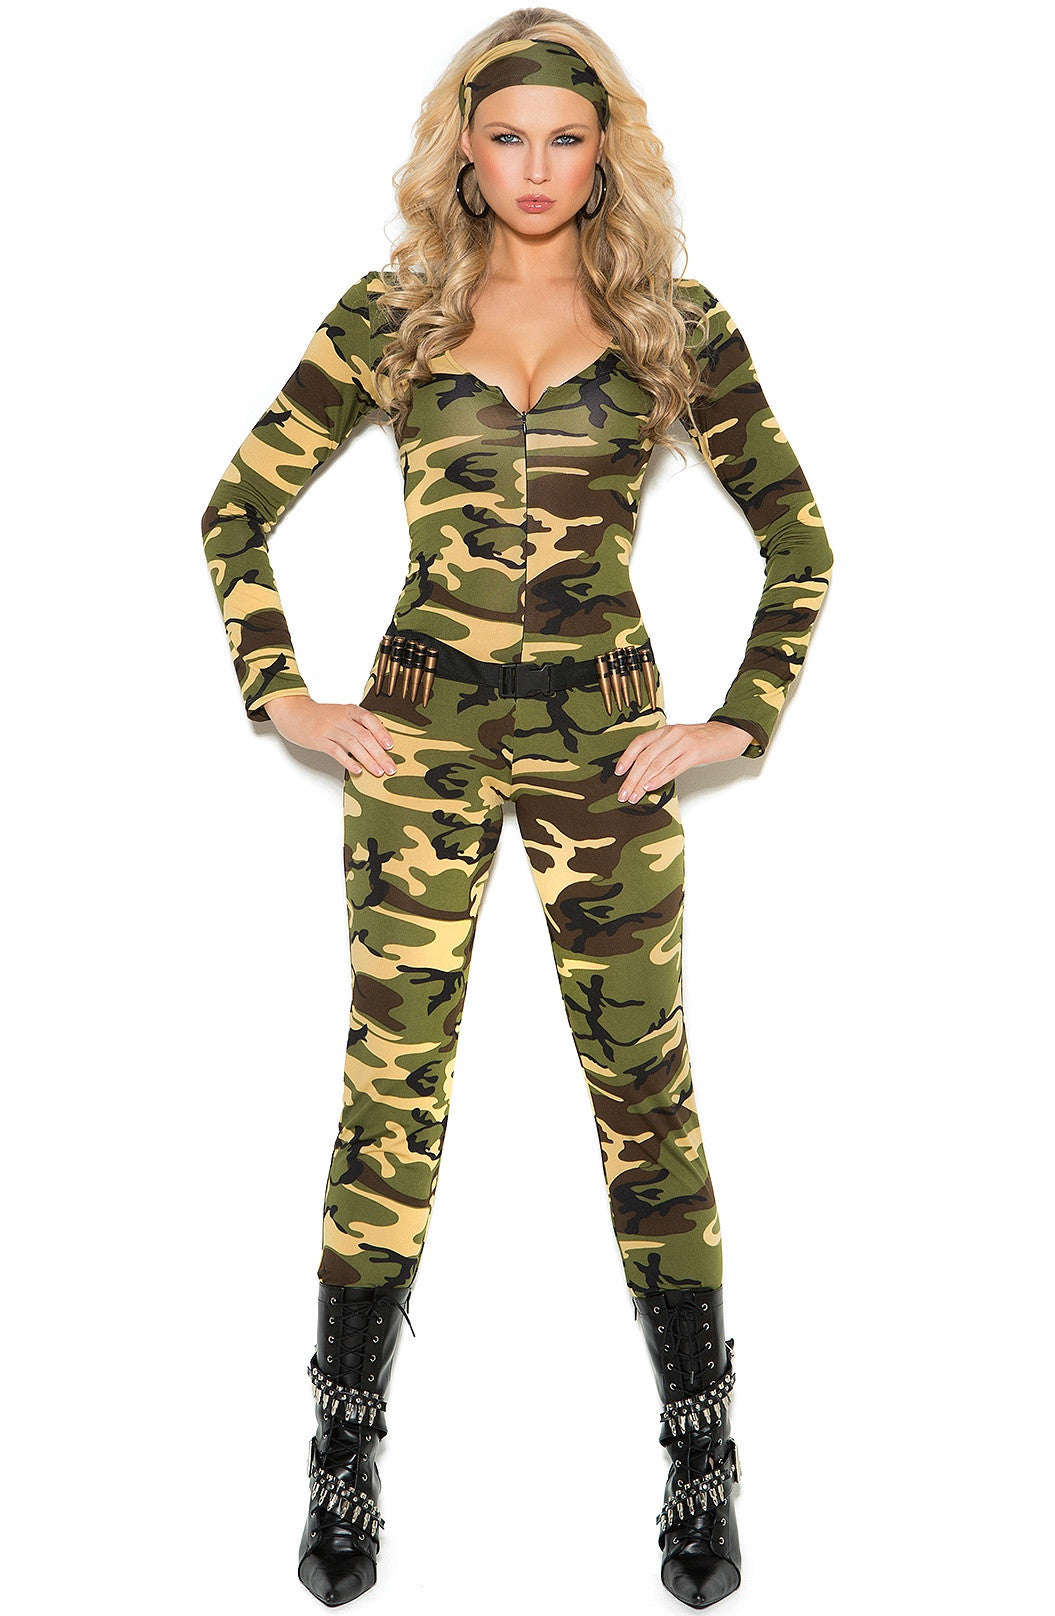 bd9361caae6 EM-9102 Combat warrior - army costume